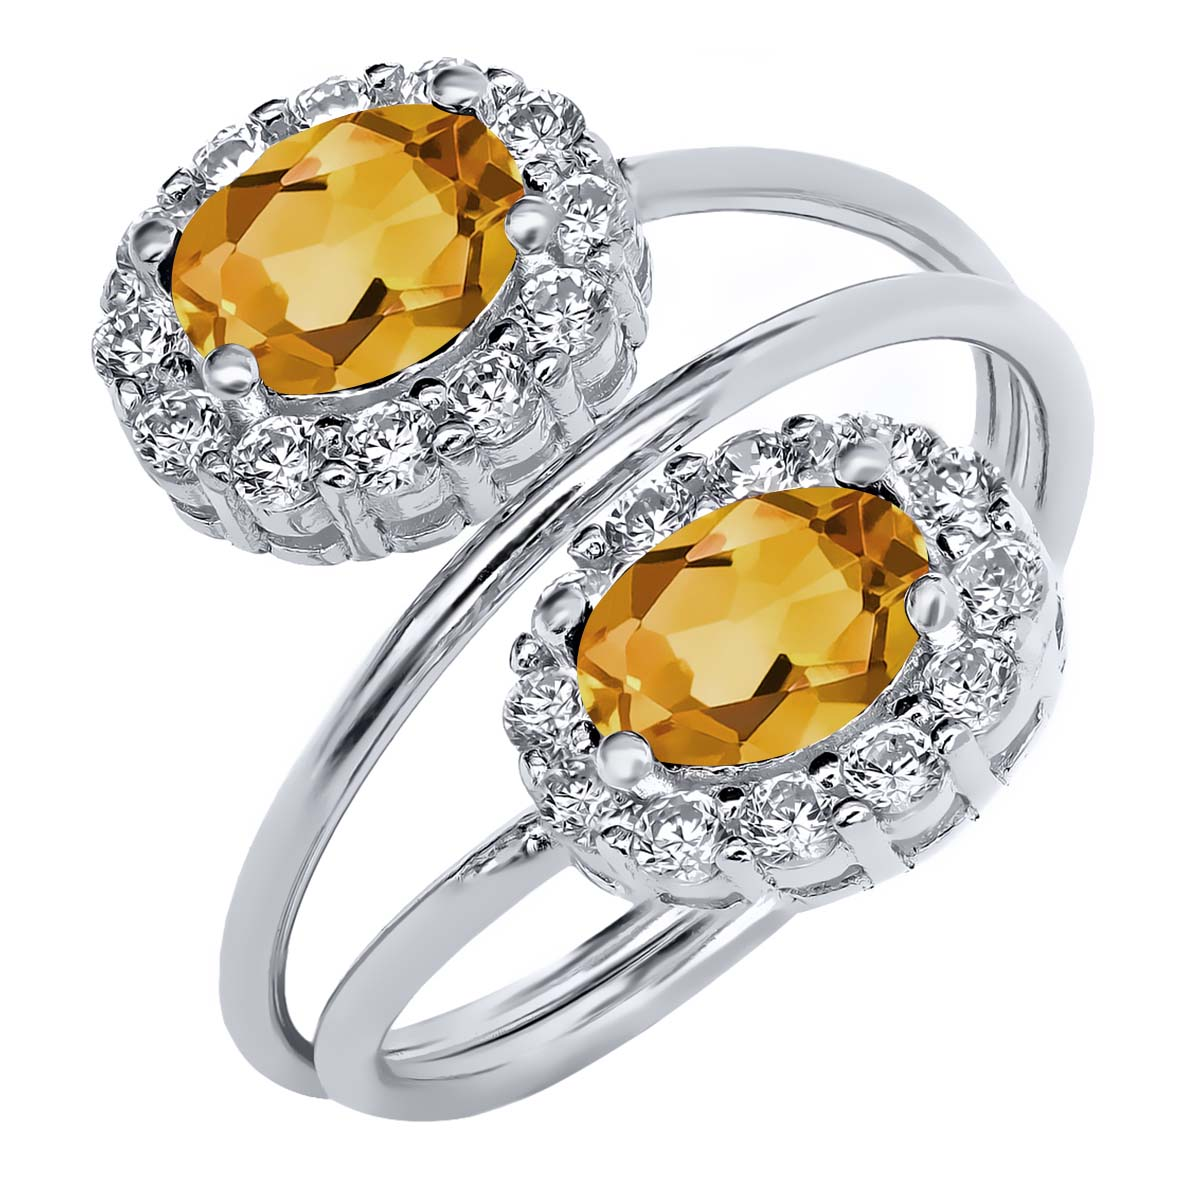 1.98 Ct Oval Yellow Citrine 925 Sterling Silver Ring